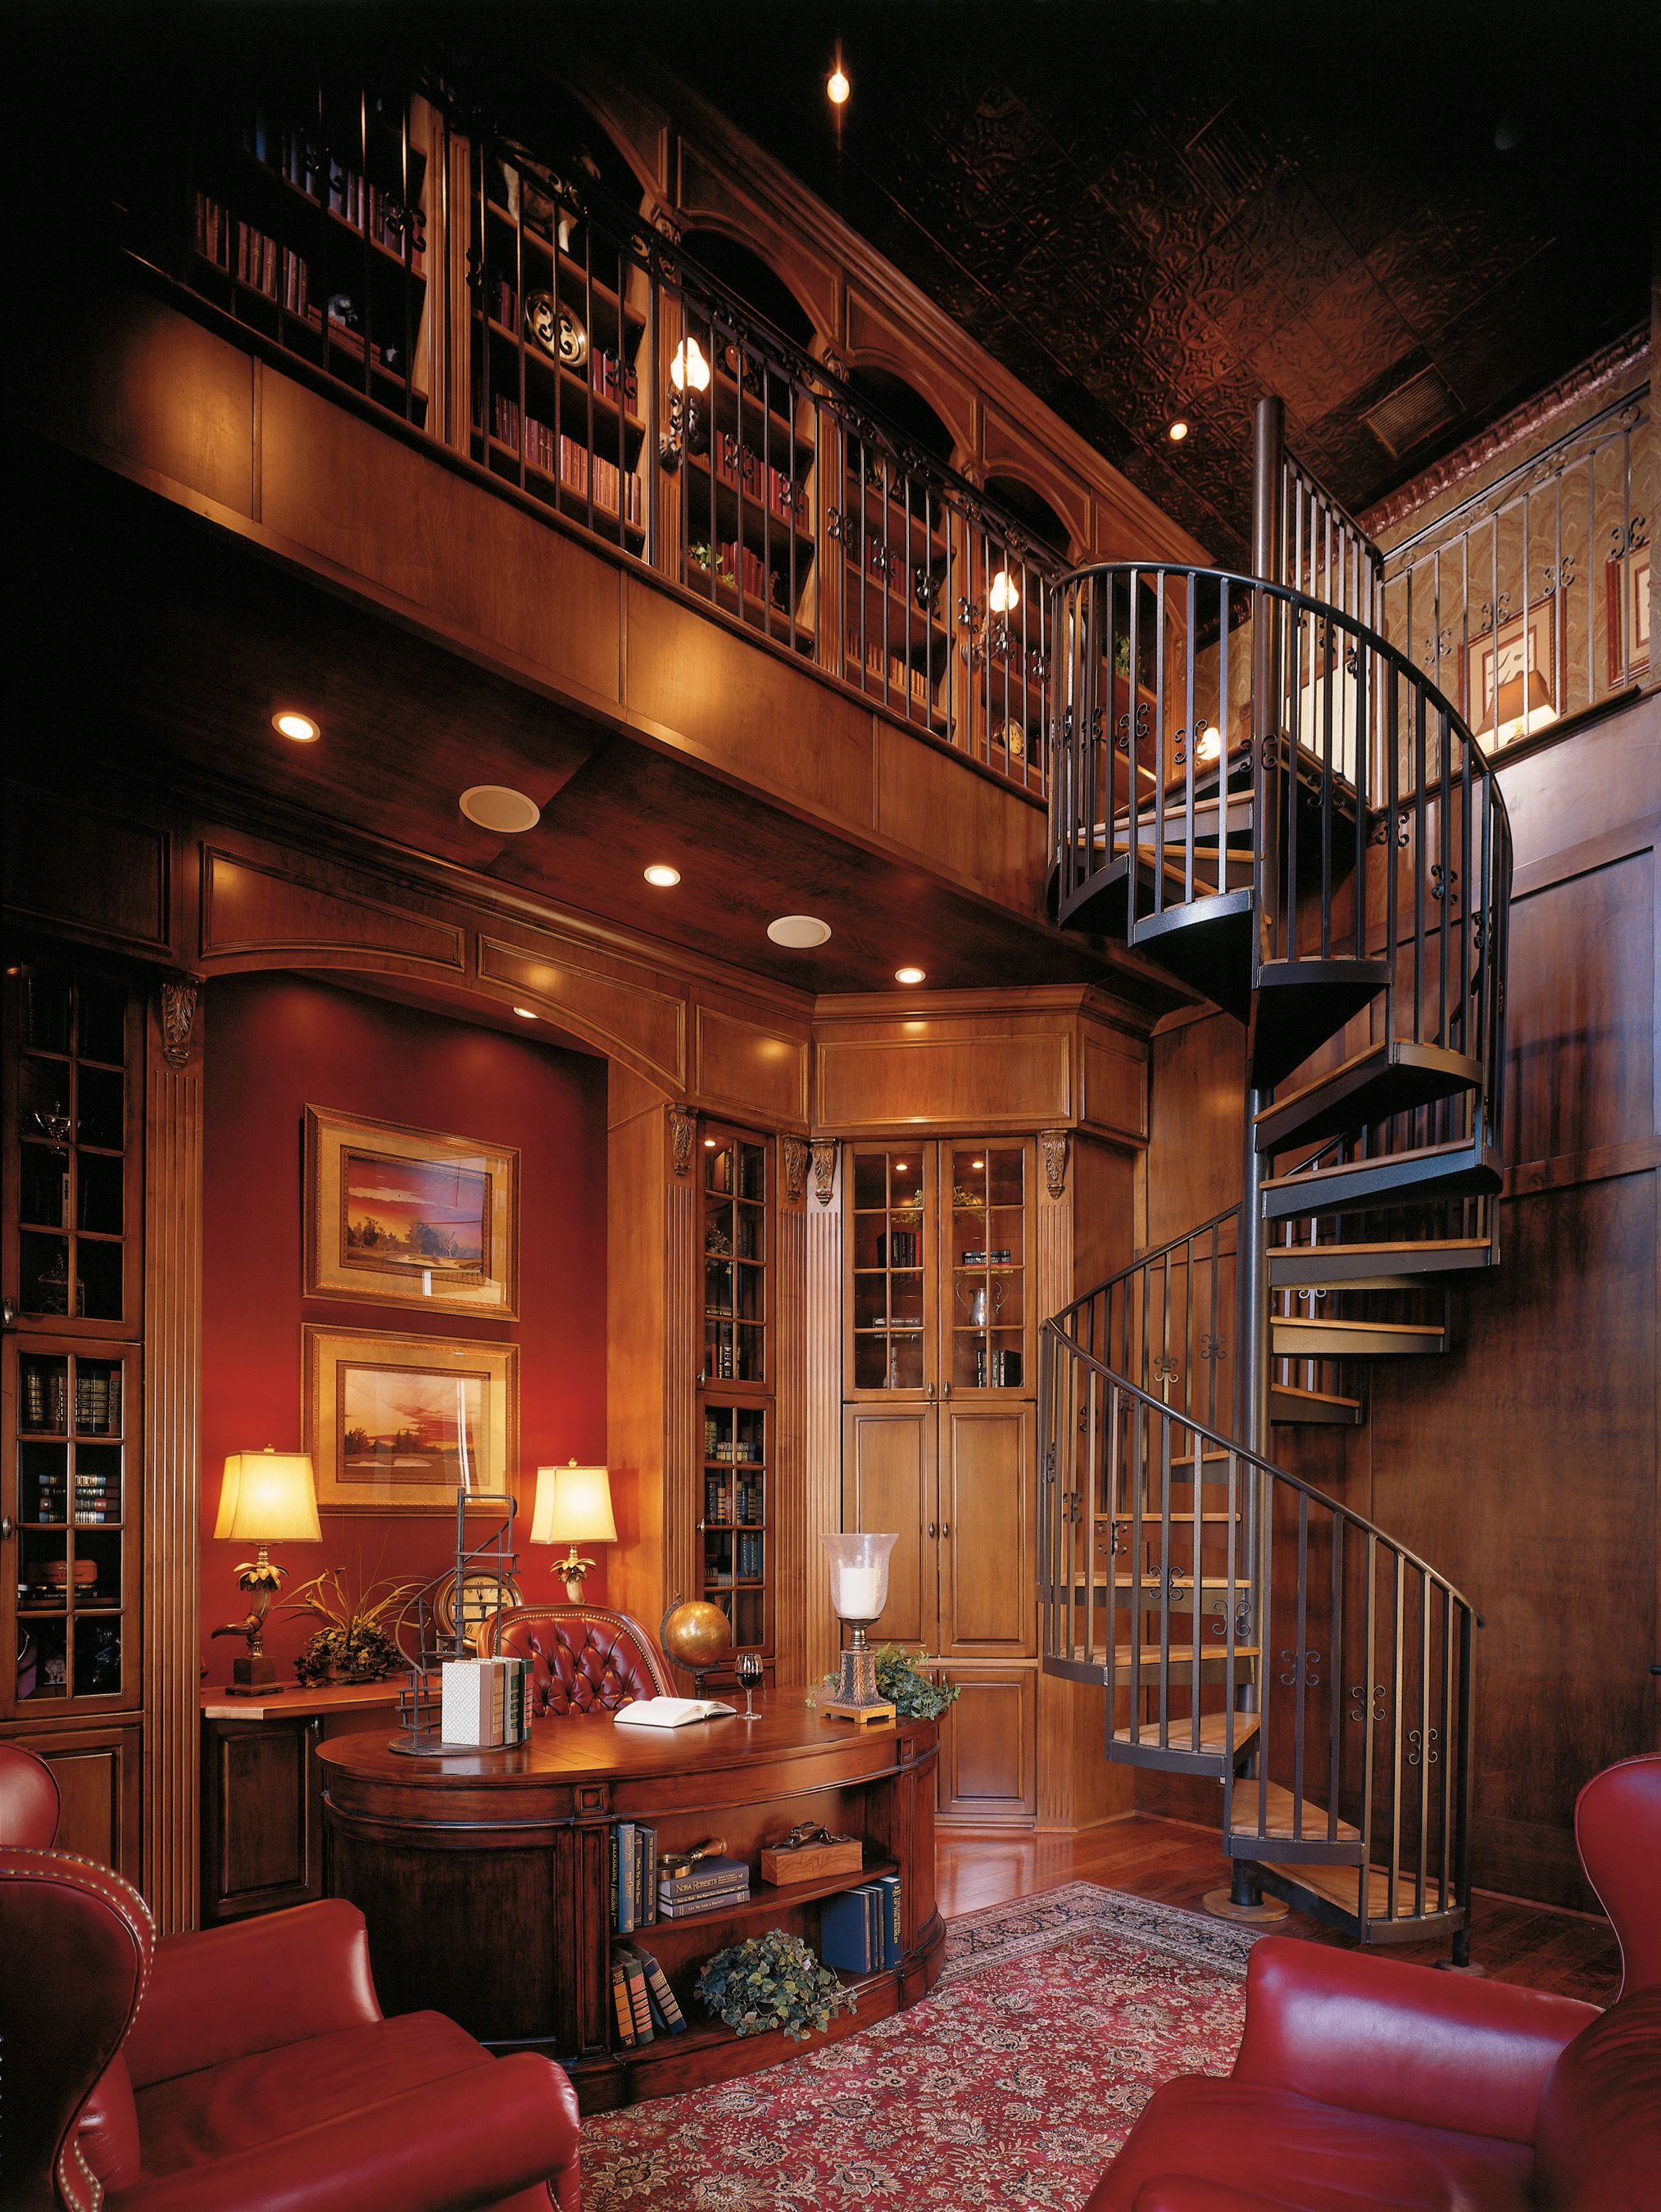 Interior Design Home Library: Home Library Design, Home Libraries